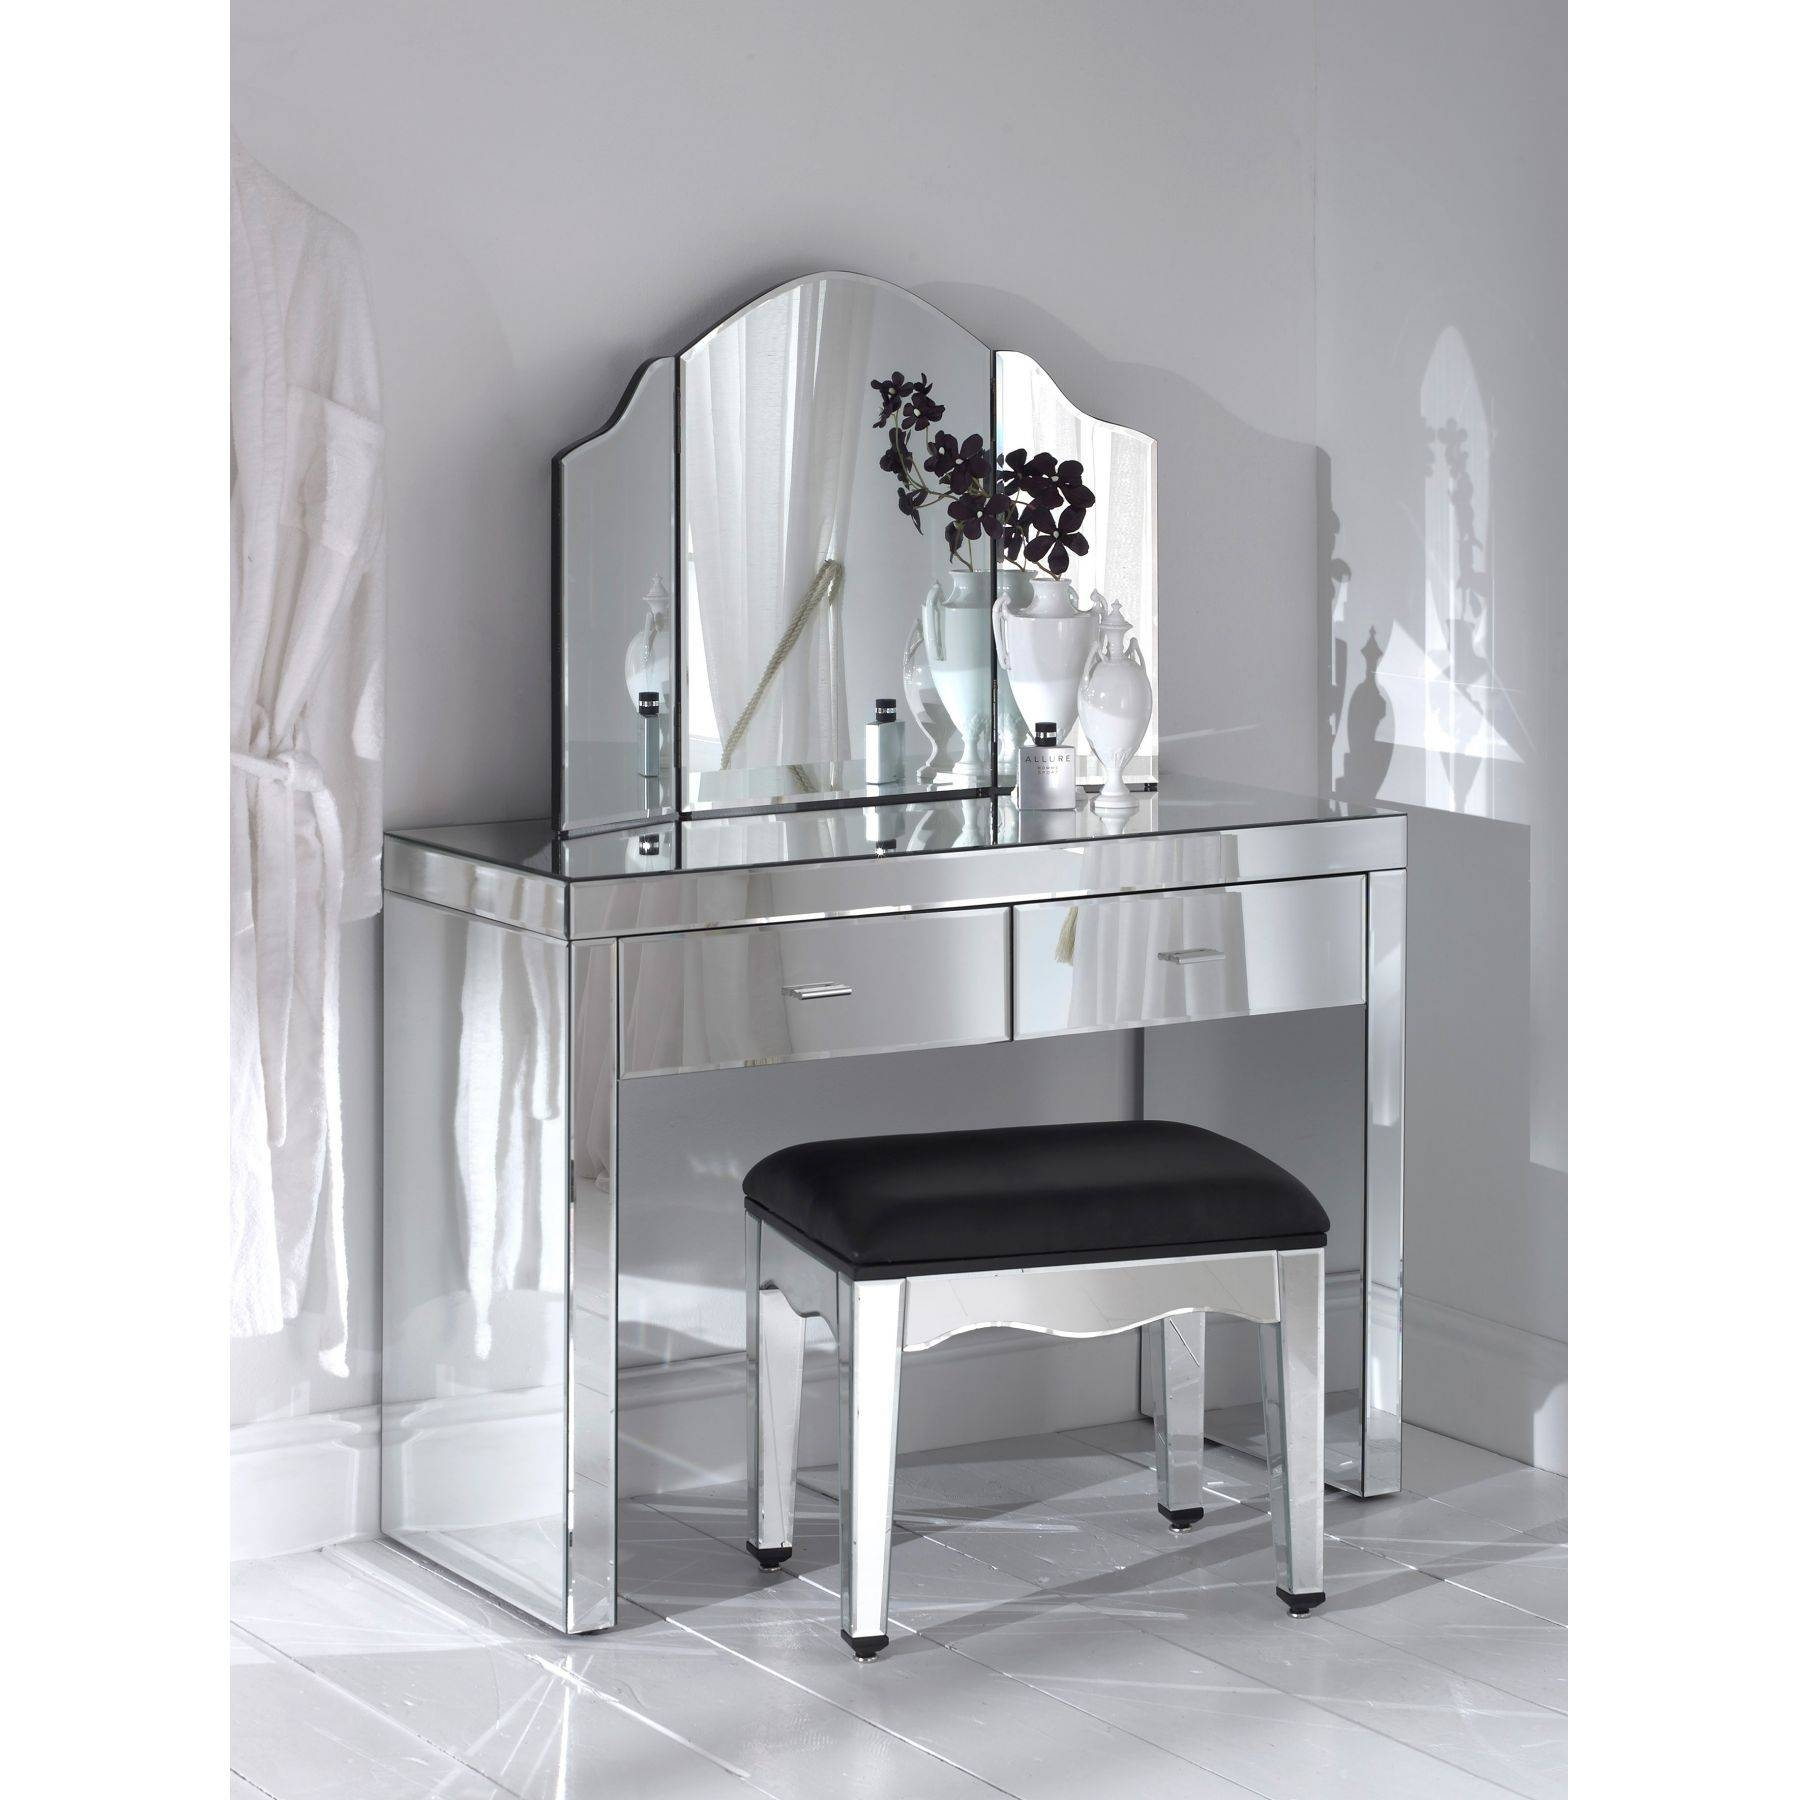 Black Dressing Table With Mirror And Lights | Creative Vanity intended for Small Table Mirrors (Image 3 of 25)